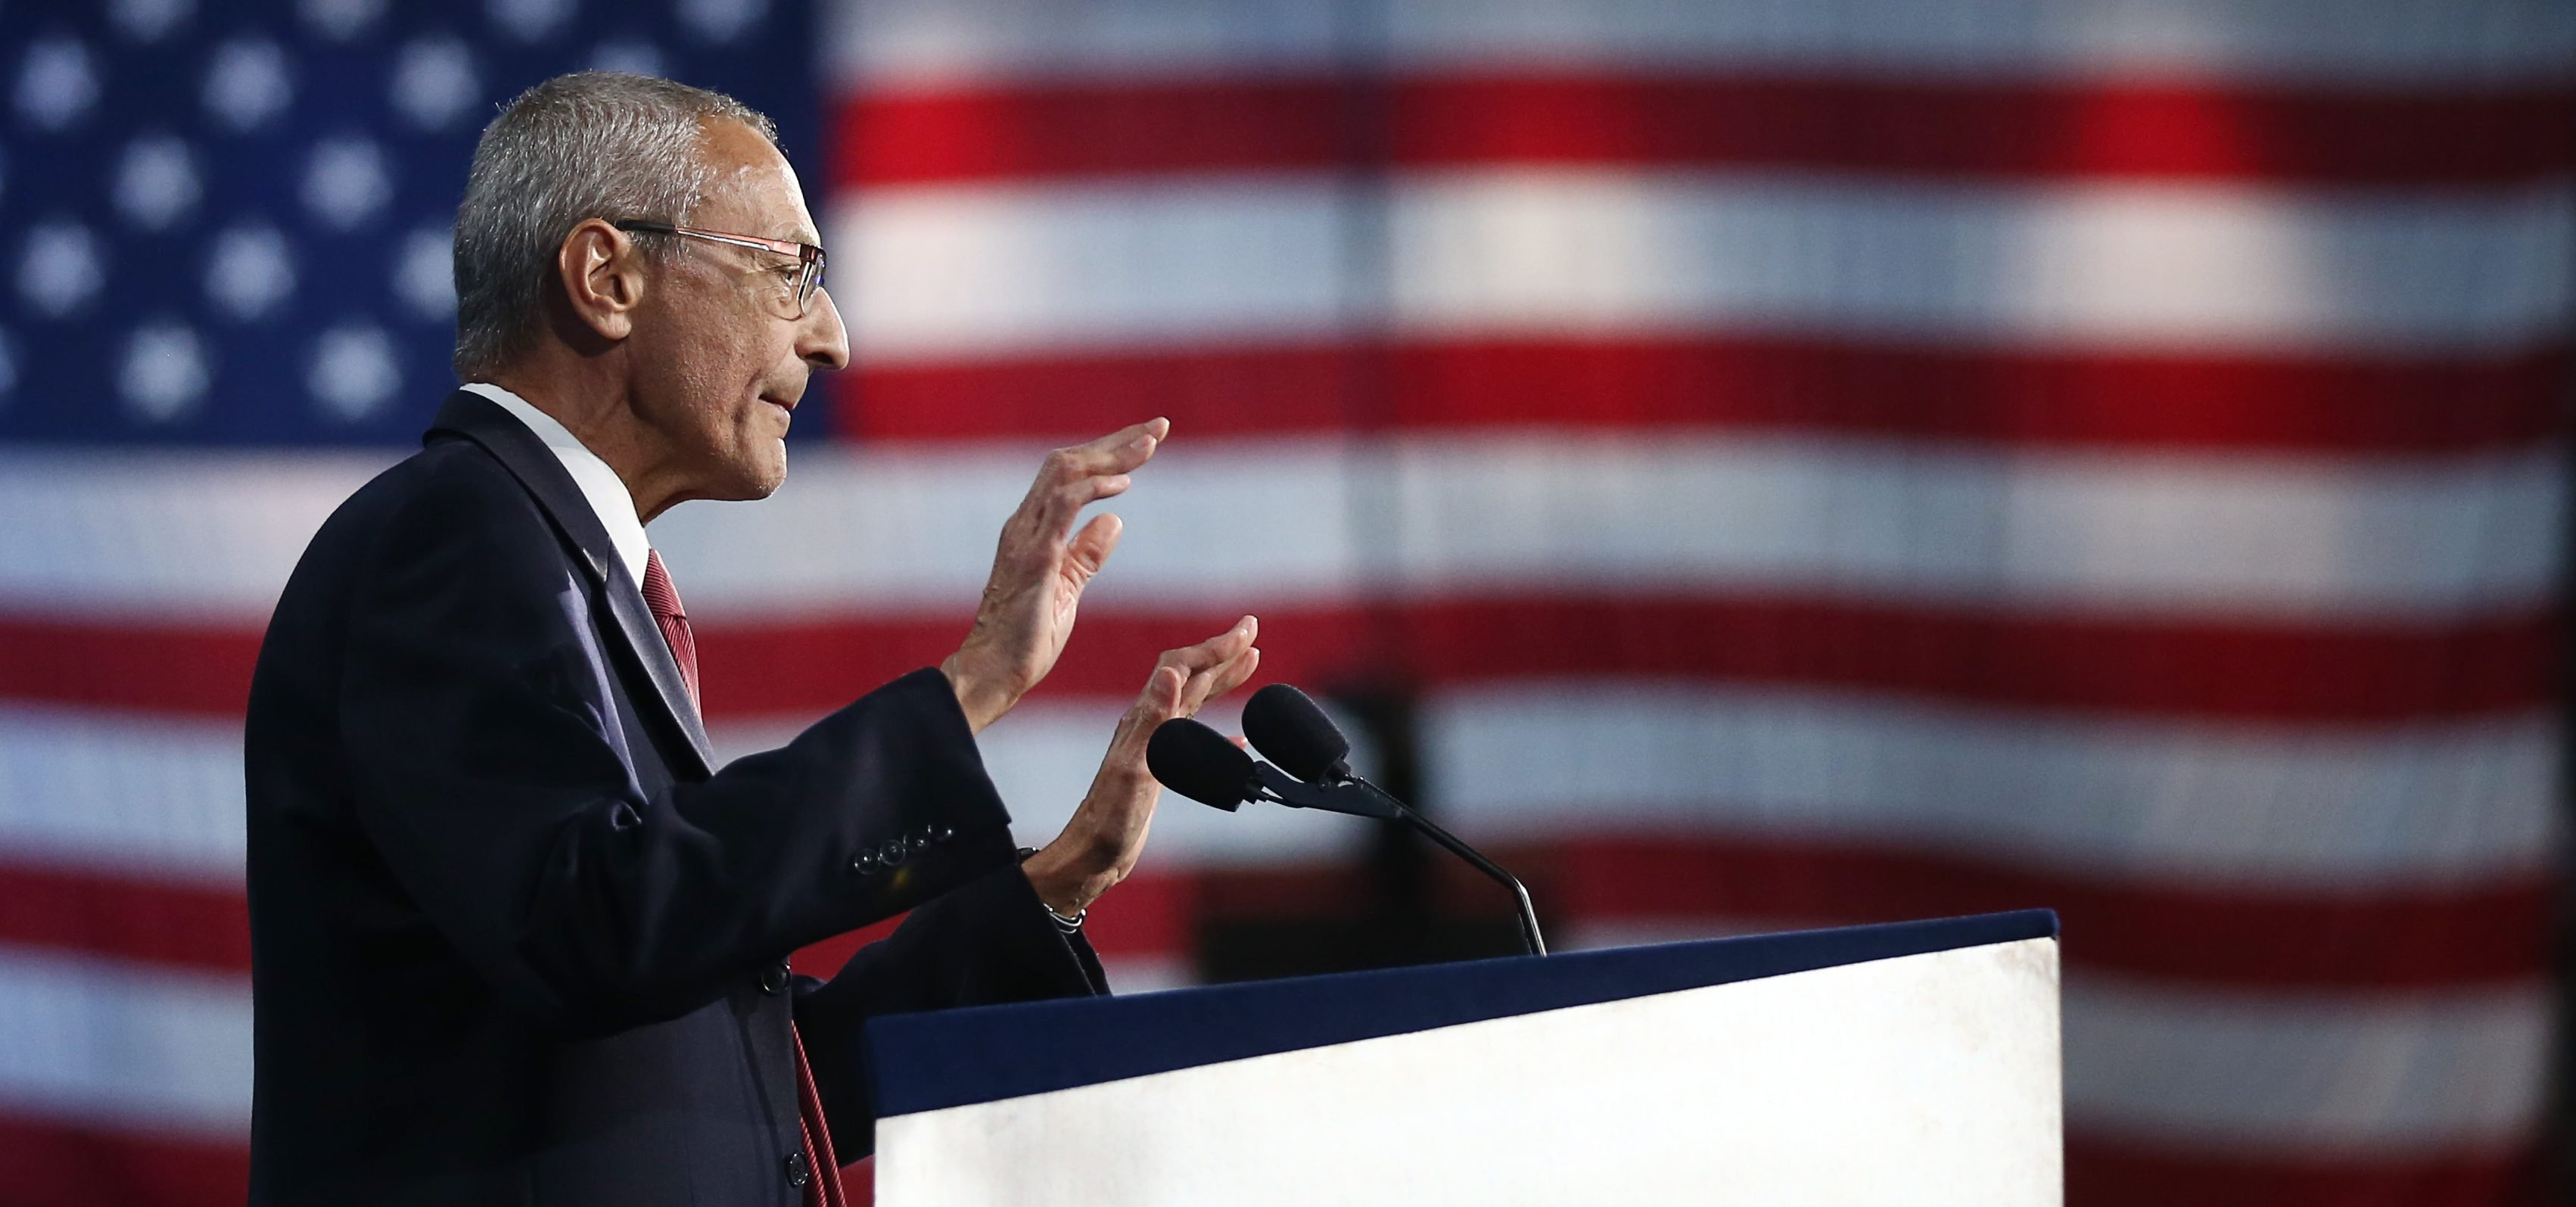 Trump Says Leaders At G20 Discussed Podesta's Refusal To Turn Over DNC Email Server